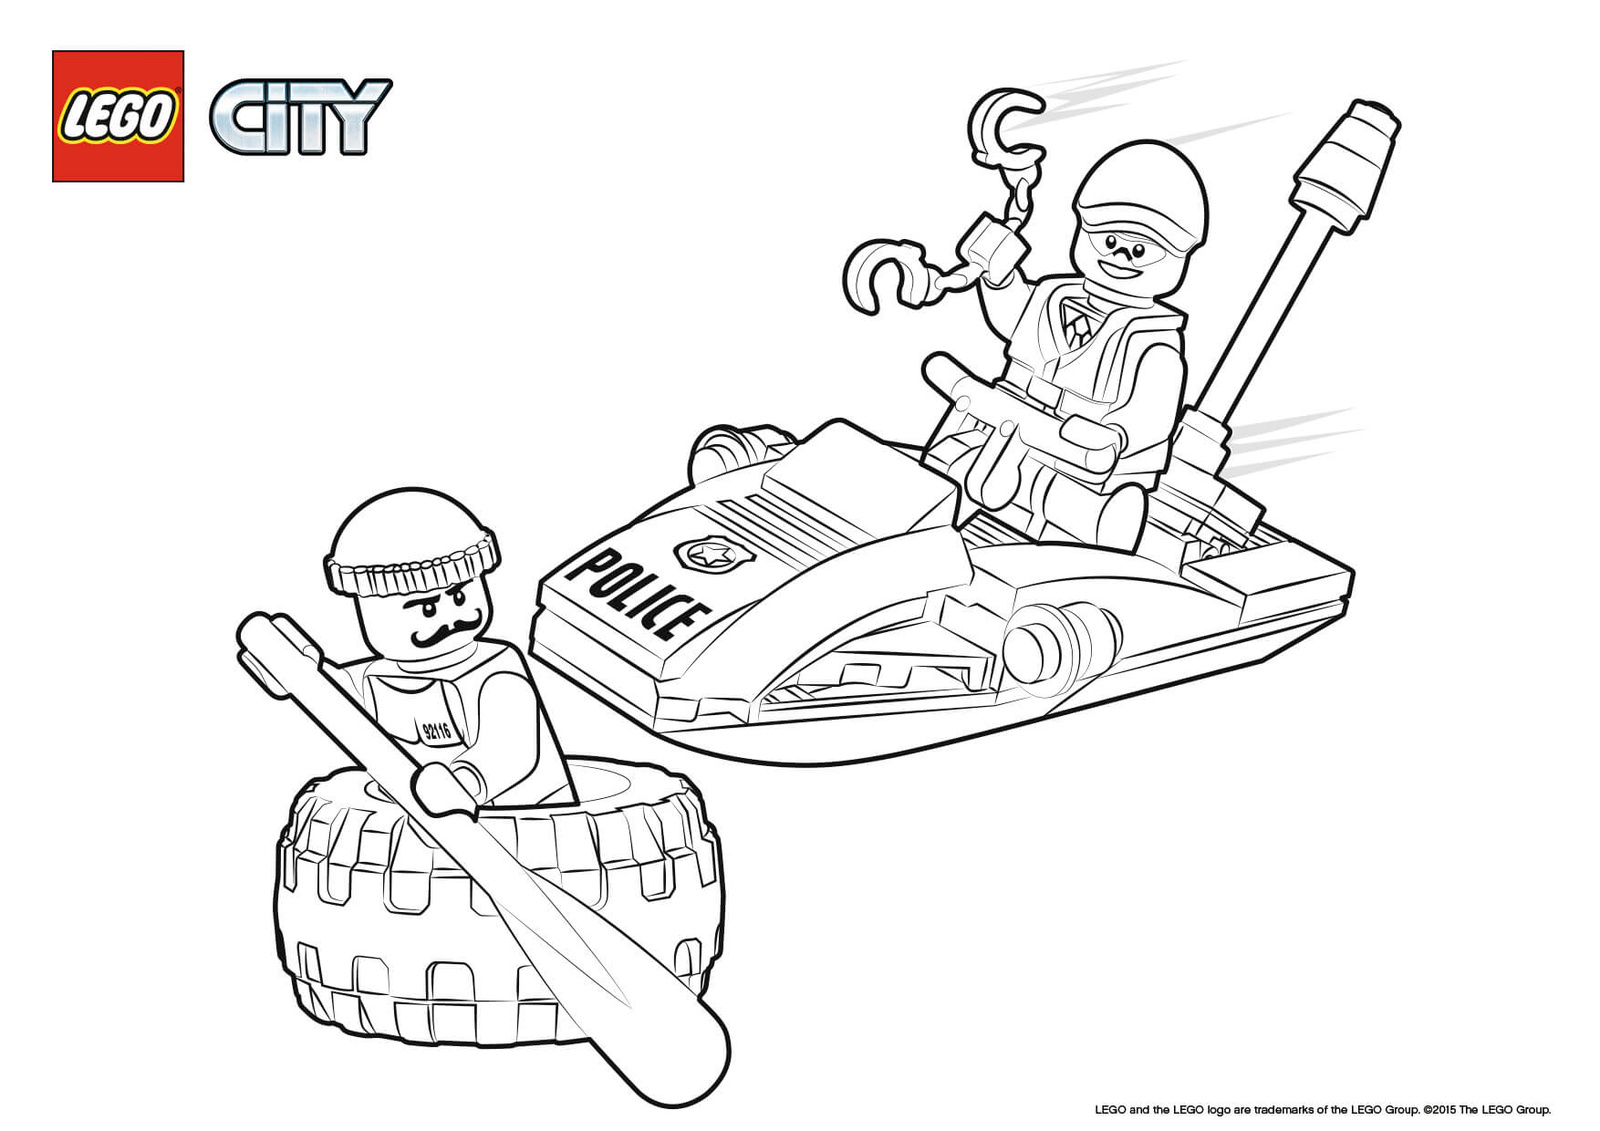 Lego city Coloring pages 🖌 to print and color